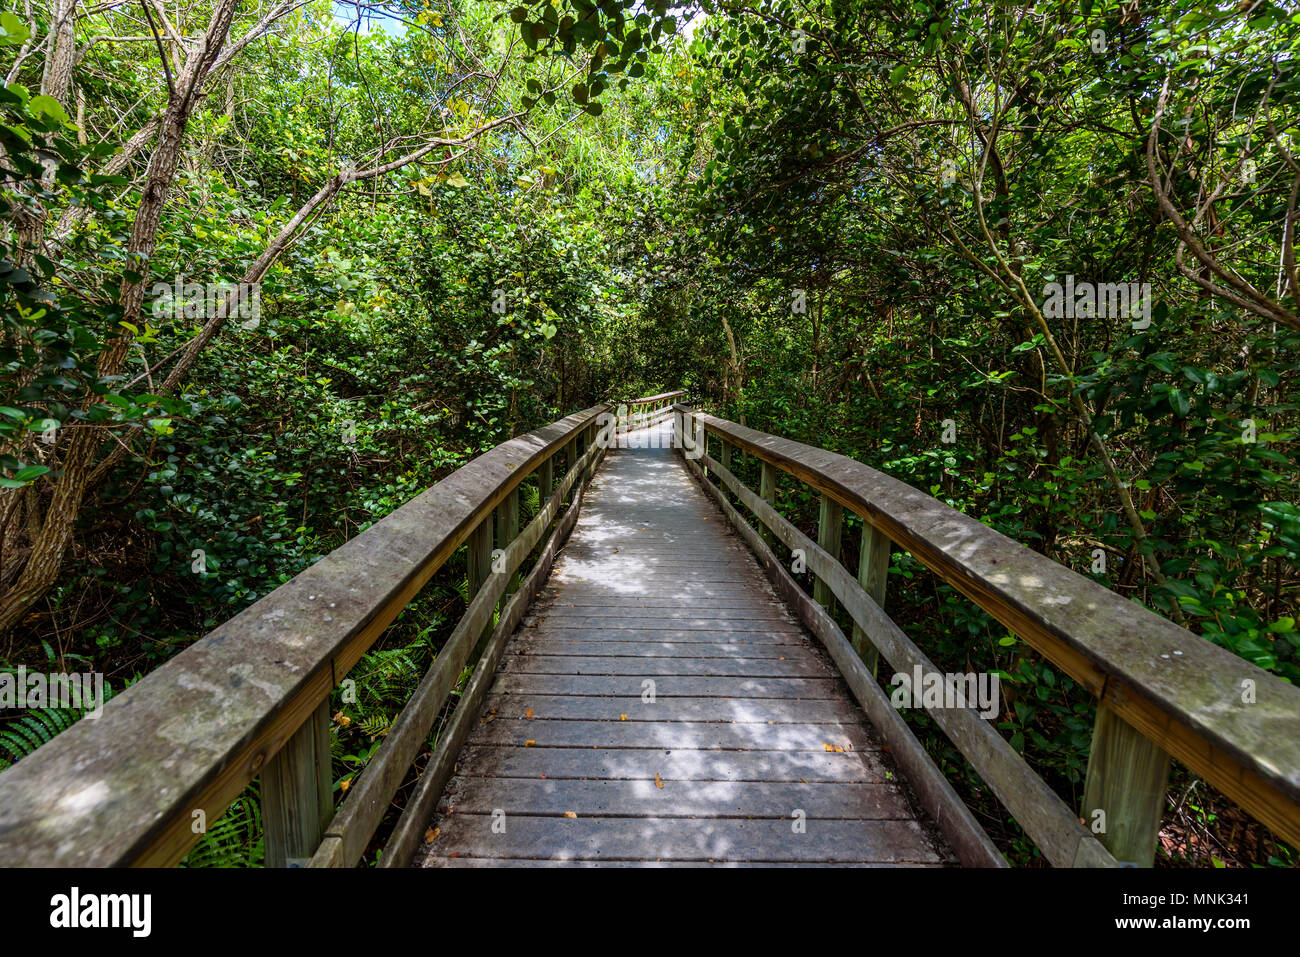 Gumbo Limbo Trail of the Everglades National Park. Boardwalks in the swamp. Florida, USA. - Stock Image